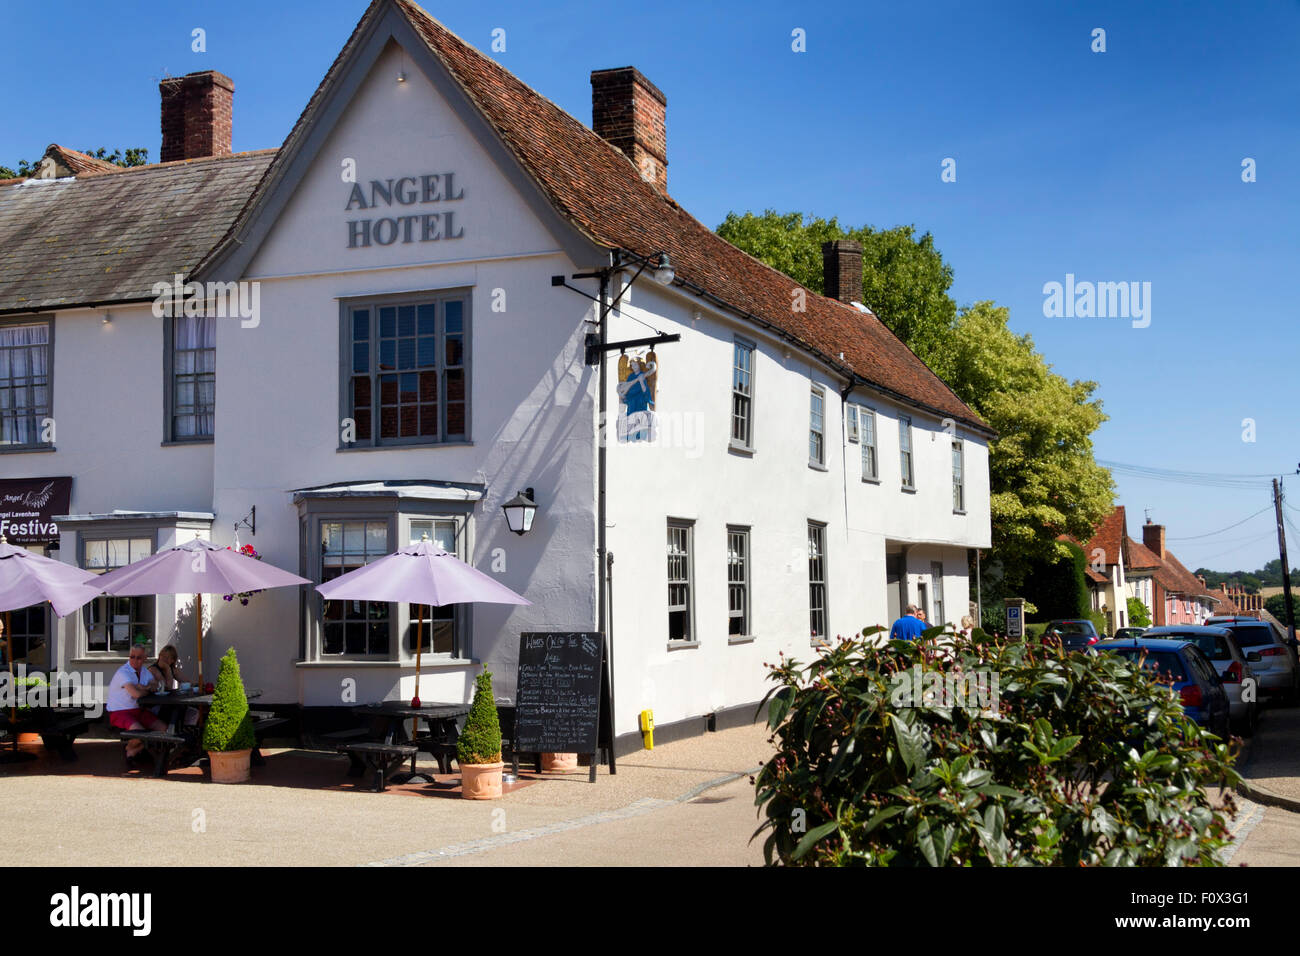 The Angel Hotel, Market Place, Lavenham, Suffolk, UK Stock Photo